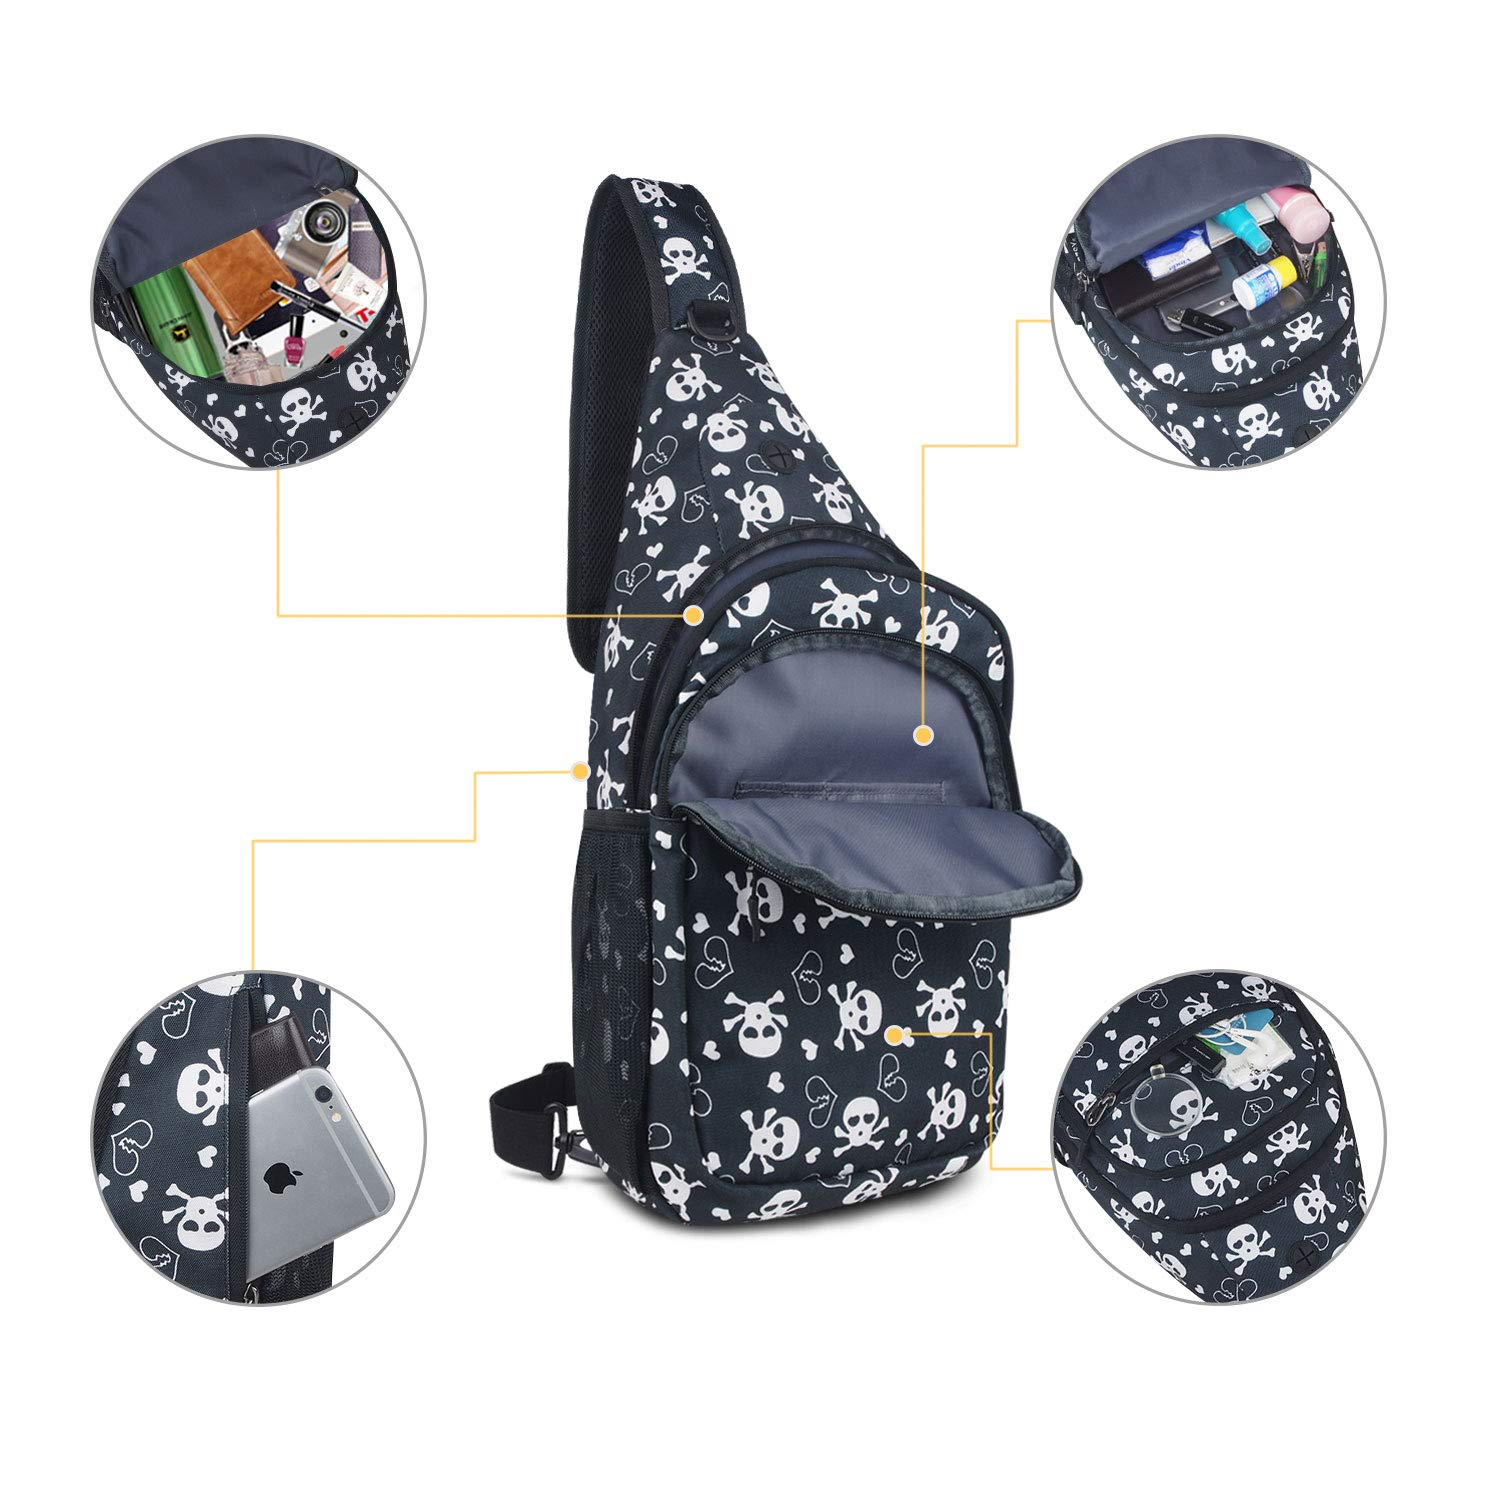 Shoulder Chest Crossbody Bag Small Daypack for Outdoor Hiking Men /& Women ZZSY Sling Backpack